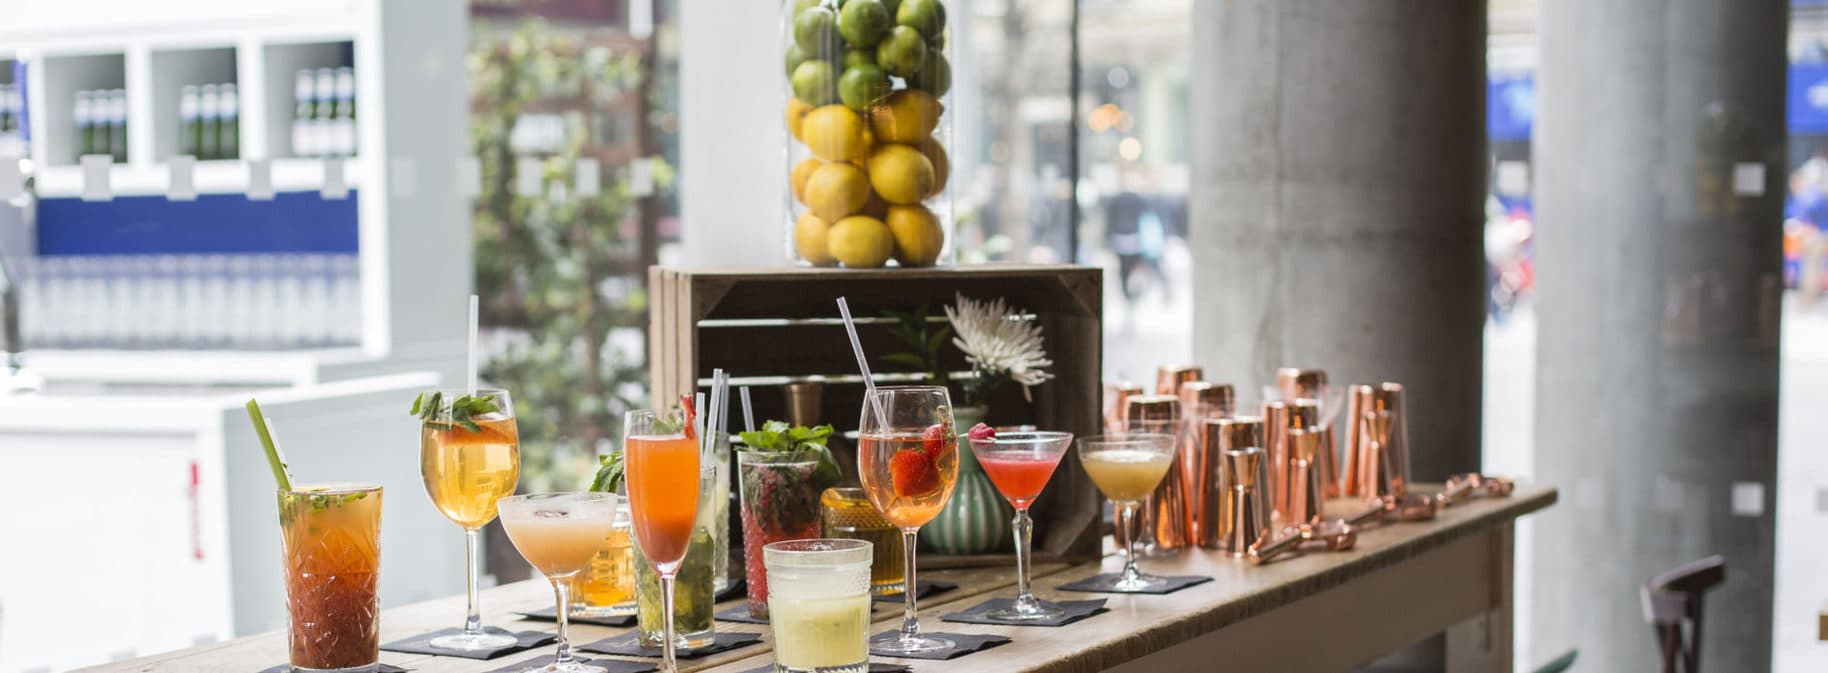 cocktail classes at home NYC